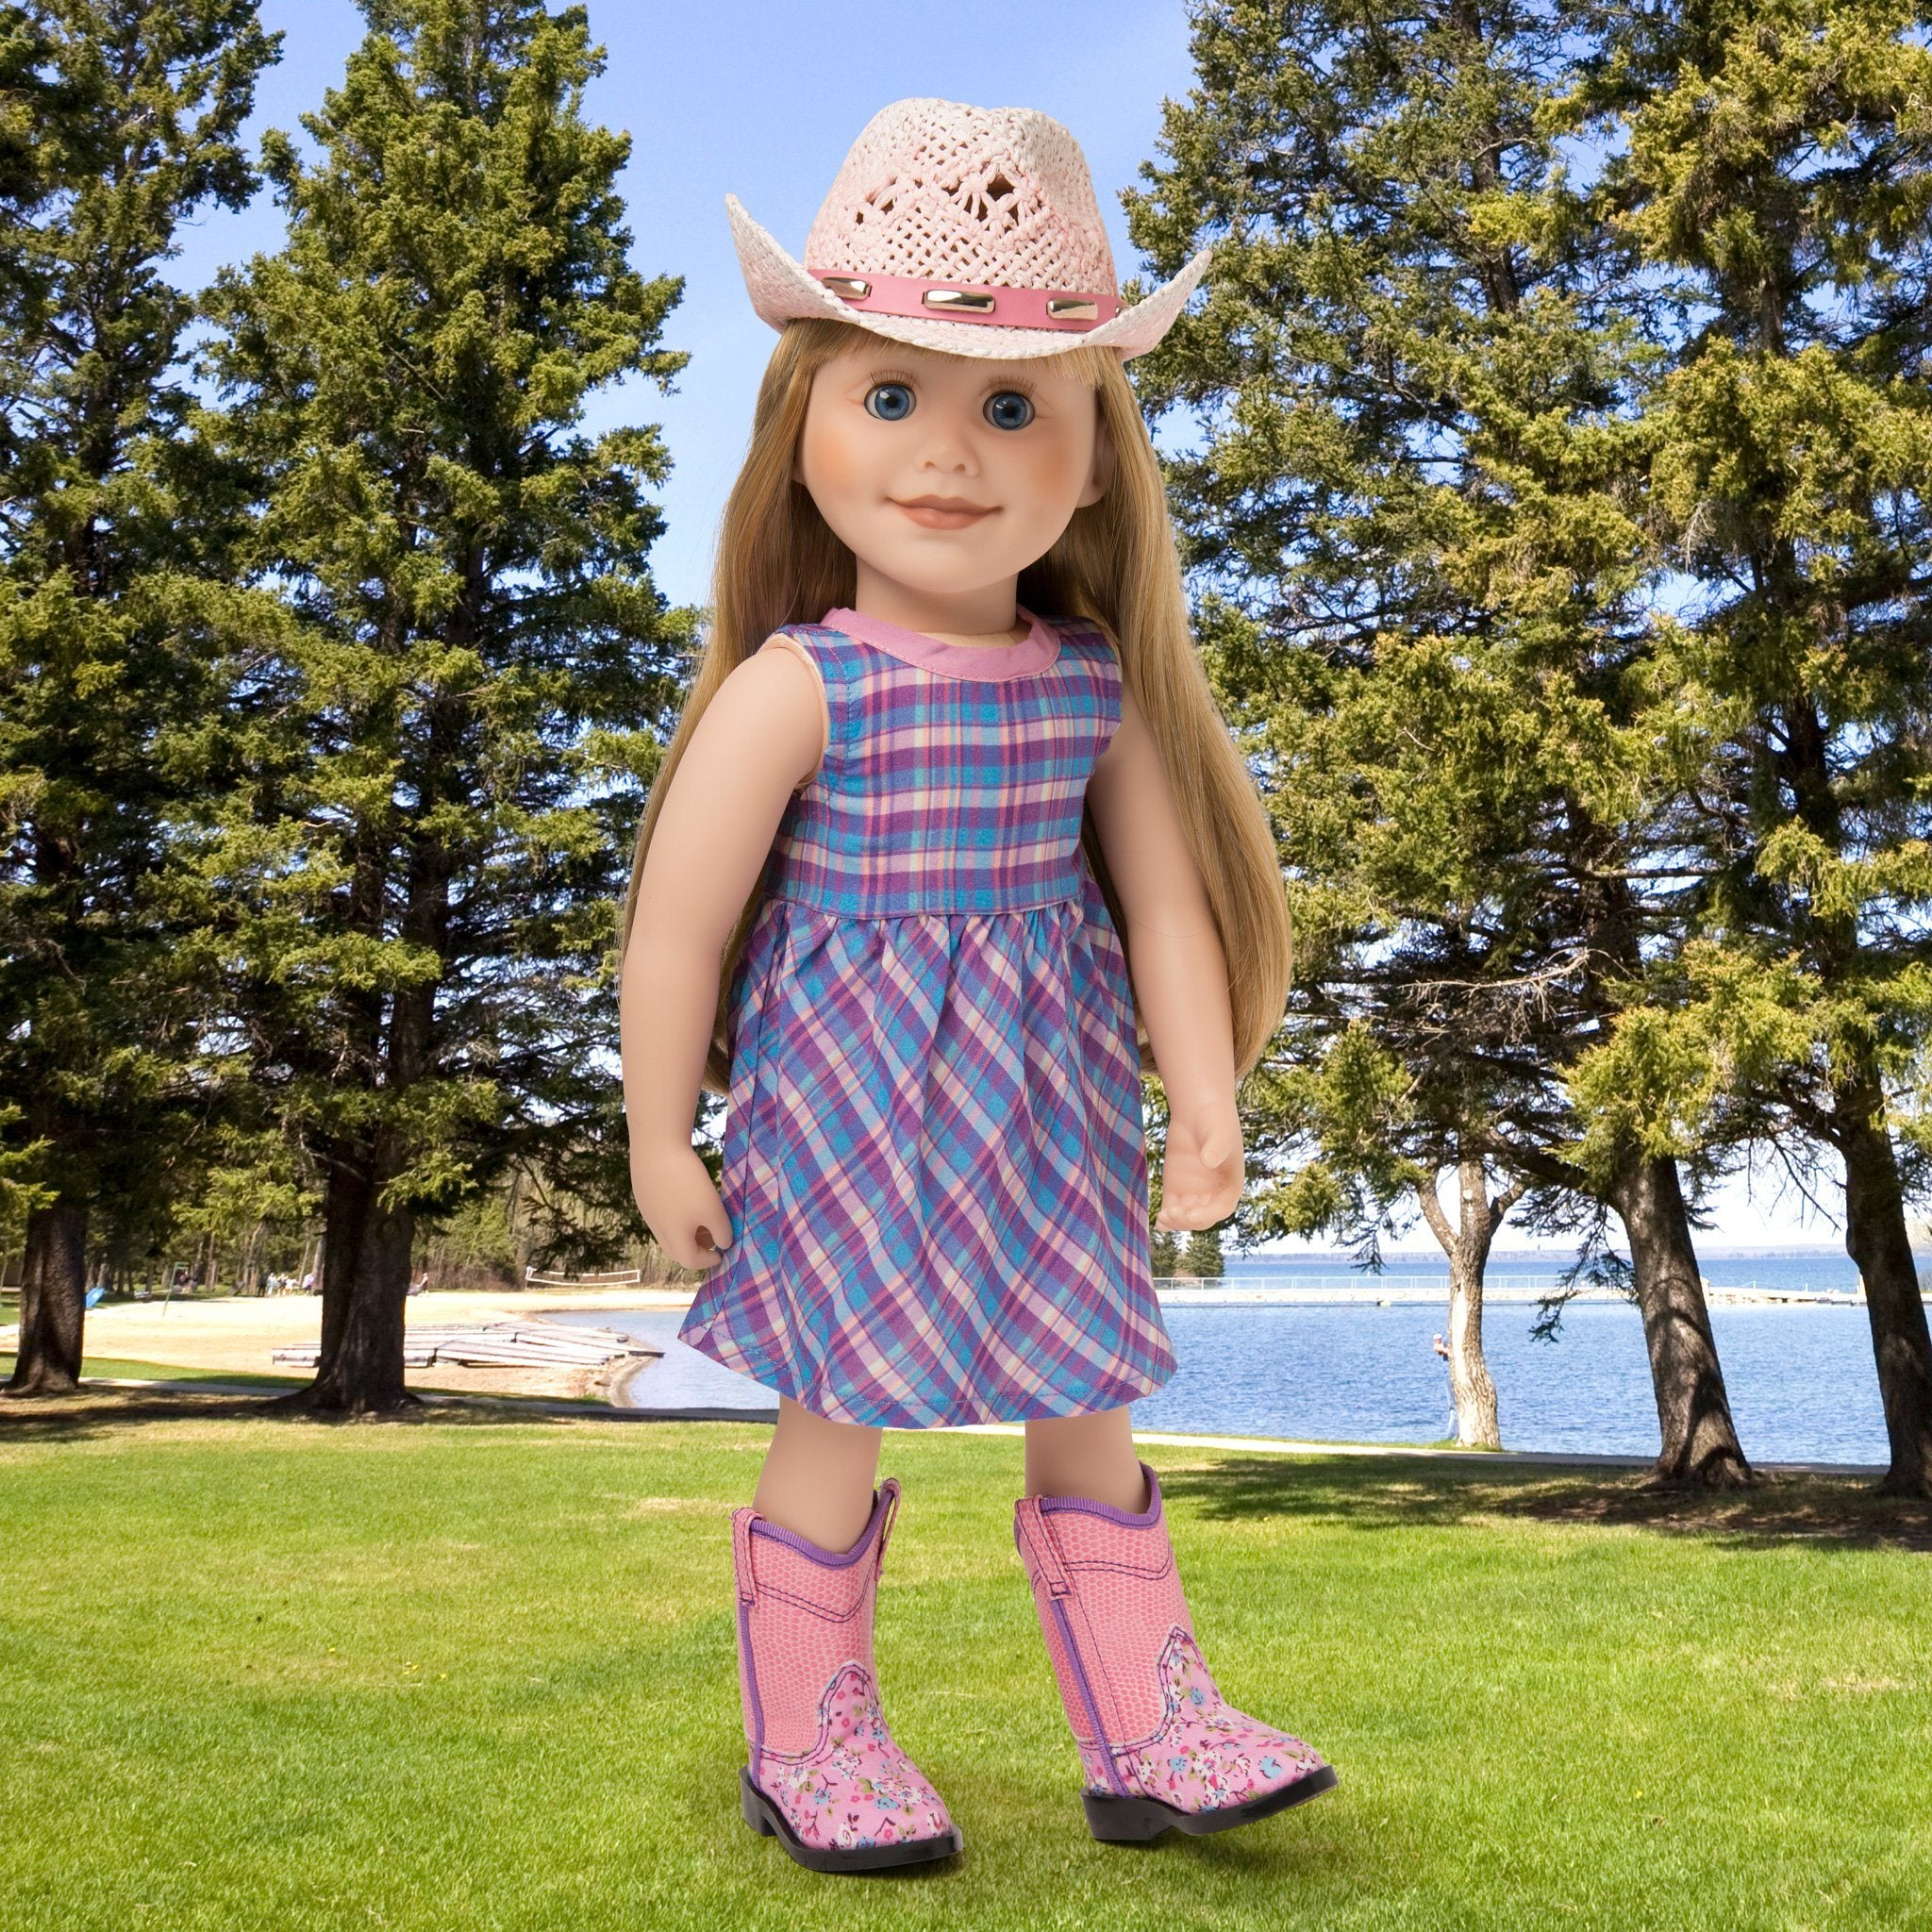 Plaid pink, purple and blue sundress, pink ombre straw cowboy hat, floral pink cowboy boots fit all 18 inch dolls.